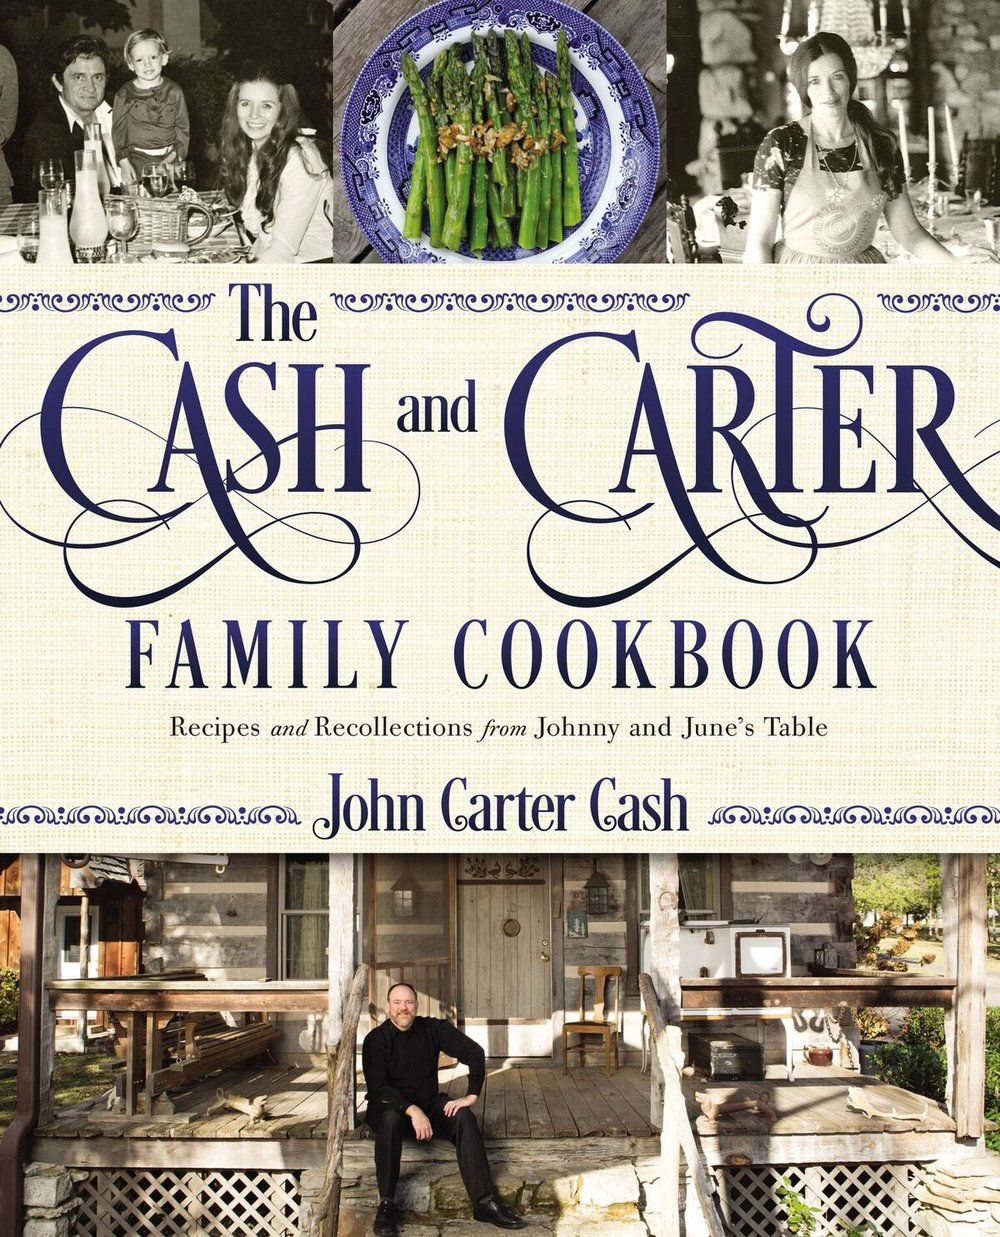 The Cash and Carter Family Cookbook: Recipes and Recollections from Johnny and June's Table   Download Cover Art  Here